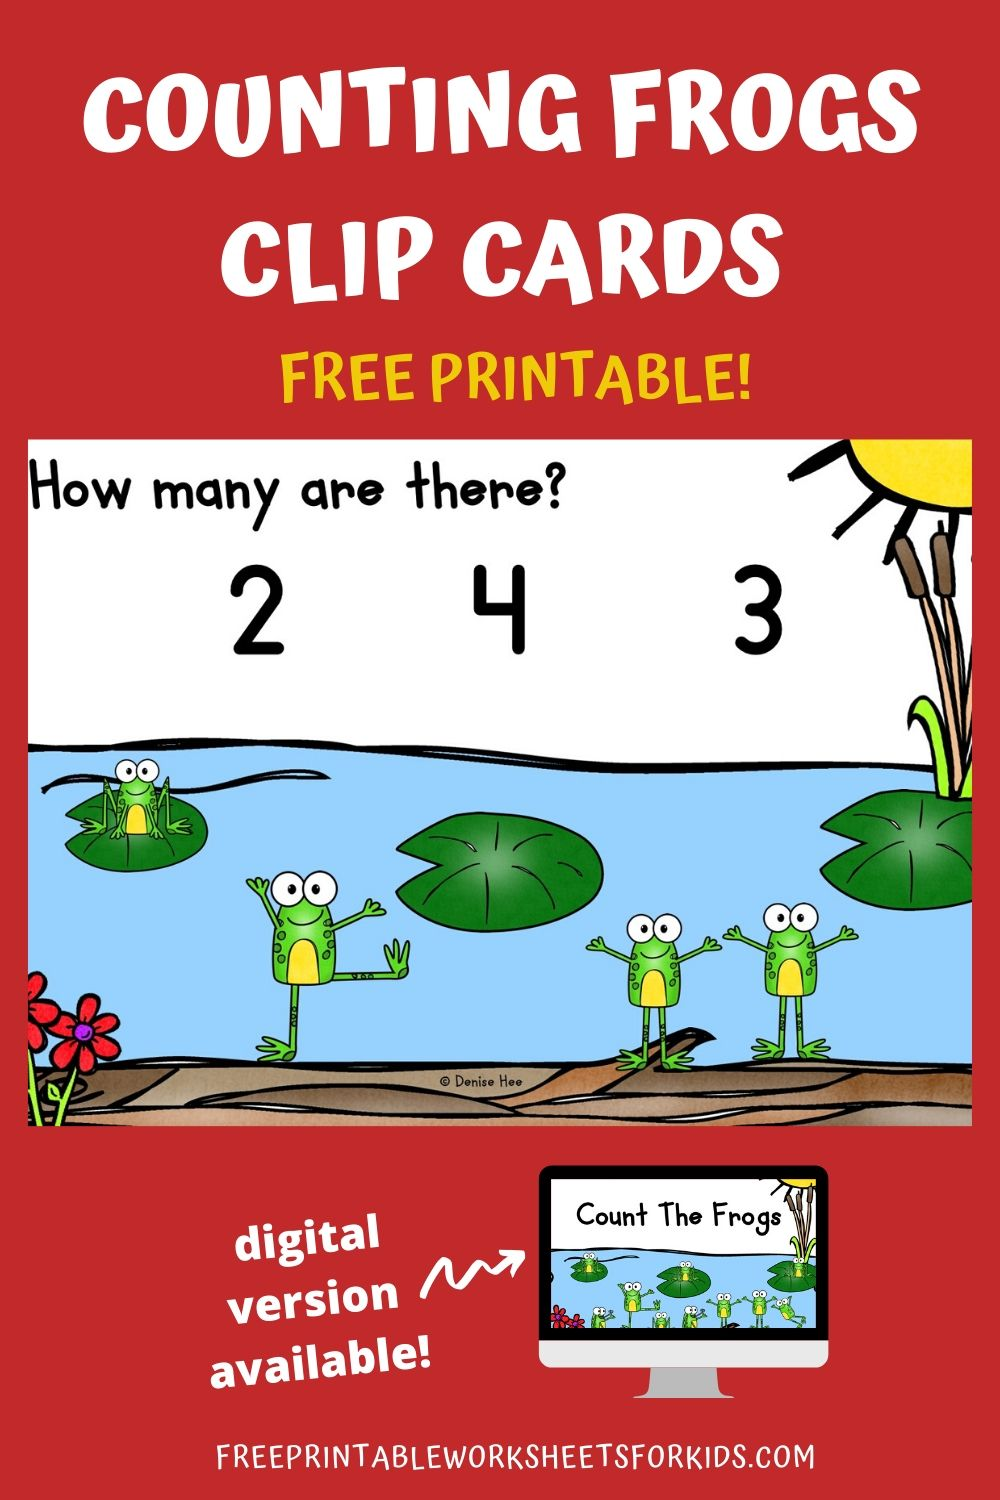 Count The Frogs 1-10 | Free Printable Worksheets For Kids | Kids will have a hopping good time playing with this adorable set of counting clip cards. Practice math while working on fine motor strength as your child counts how many frogs are by the pond. Other Printable Spring Centers and Worksheets Spring Printable Worksheets Pack- 50 pages of print and play worksheets. Spring Code Words - Solve the codes to learn some Spring vocabulary words. Bumblebee Addition Game - Solve the sum to find out which flower the bee should land on. Counting Clip Cards Setup For this activity you will need: Paper Printer Wooden pegs or clothespins Optional: laminator If you don't have the materials needed, don't sweat! You can get it delivered to your doorstep really quickly with Amazon Prime. You can get a 30-day free trial here.  Playing This Fun Counting Game Print out the pages and cut them as needed into individual clip cards. I would suggest laminating them so you can use them again and again. Lay out the cards with some wooden pegs and that's it! Your kids are now ready for some fun math :) Additionally, you could provide some small tokens or counters that your student can use to help them count. They can place a counter over each worm to avoid counting them twice by mistake and to reinforce one to one correspondence. I have a large collection of Spring and Summer Counting Clip Cards. You can find more to complement this activity here. Pair Up This Spring Themed Math Activity For more printable games or if you're looking to build up your lesson plans for Spring, check out my 10 Bugs and Butterflies Themed Literacy and Math Centers. Looking for digital task cards? If you're using digital task cards in your classroom, you can find the Boom Cards version of this game in my Boom Learning shop (under Kool Kids Games) or in my Teachers Pay Teachers store.